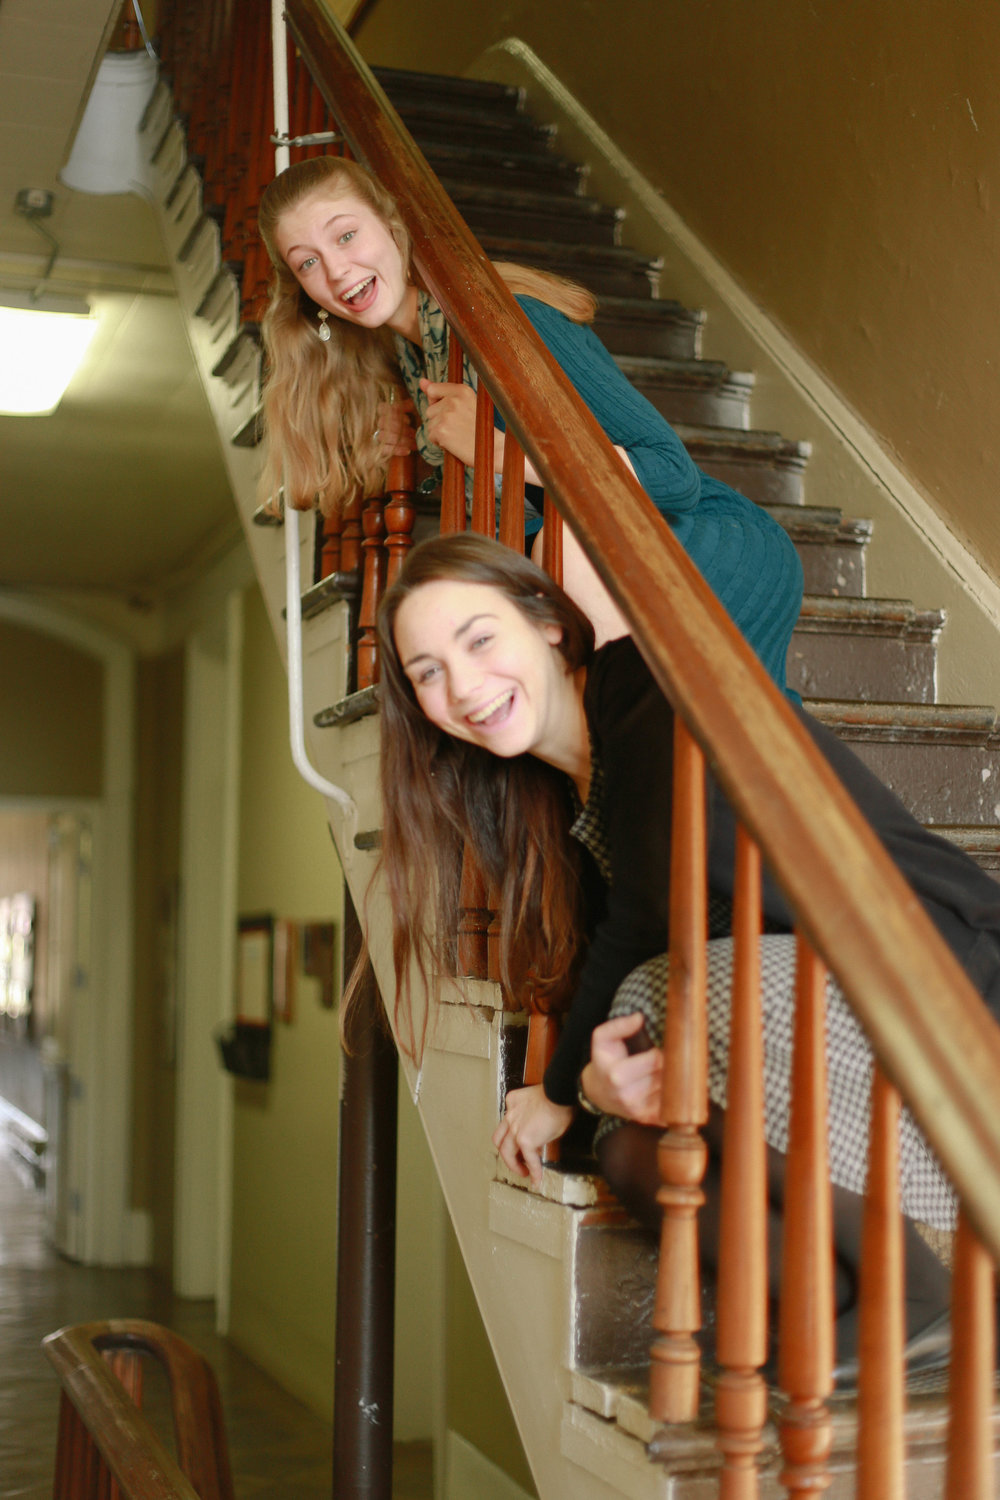 Such a good photo idea...until I realized that both of them are still taller than the banister when sitting down. Free the sopranos!